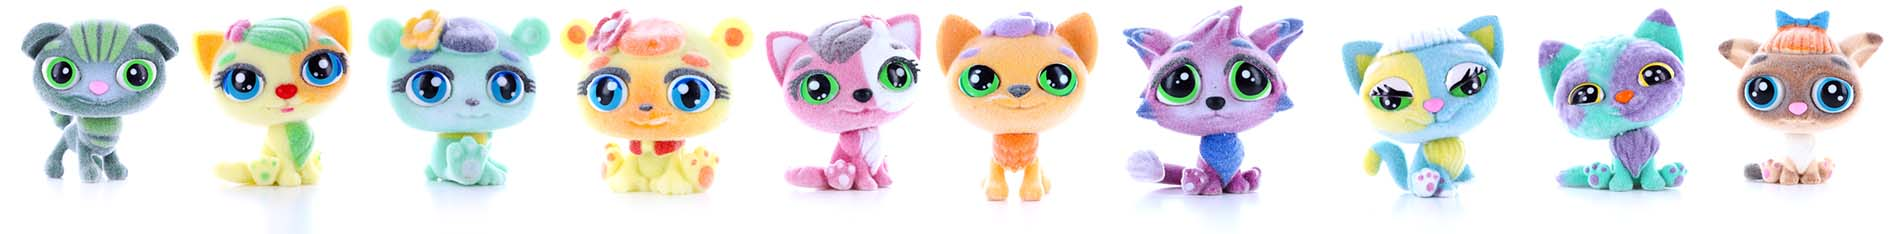 coleccion-lovelycharm-kitty